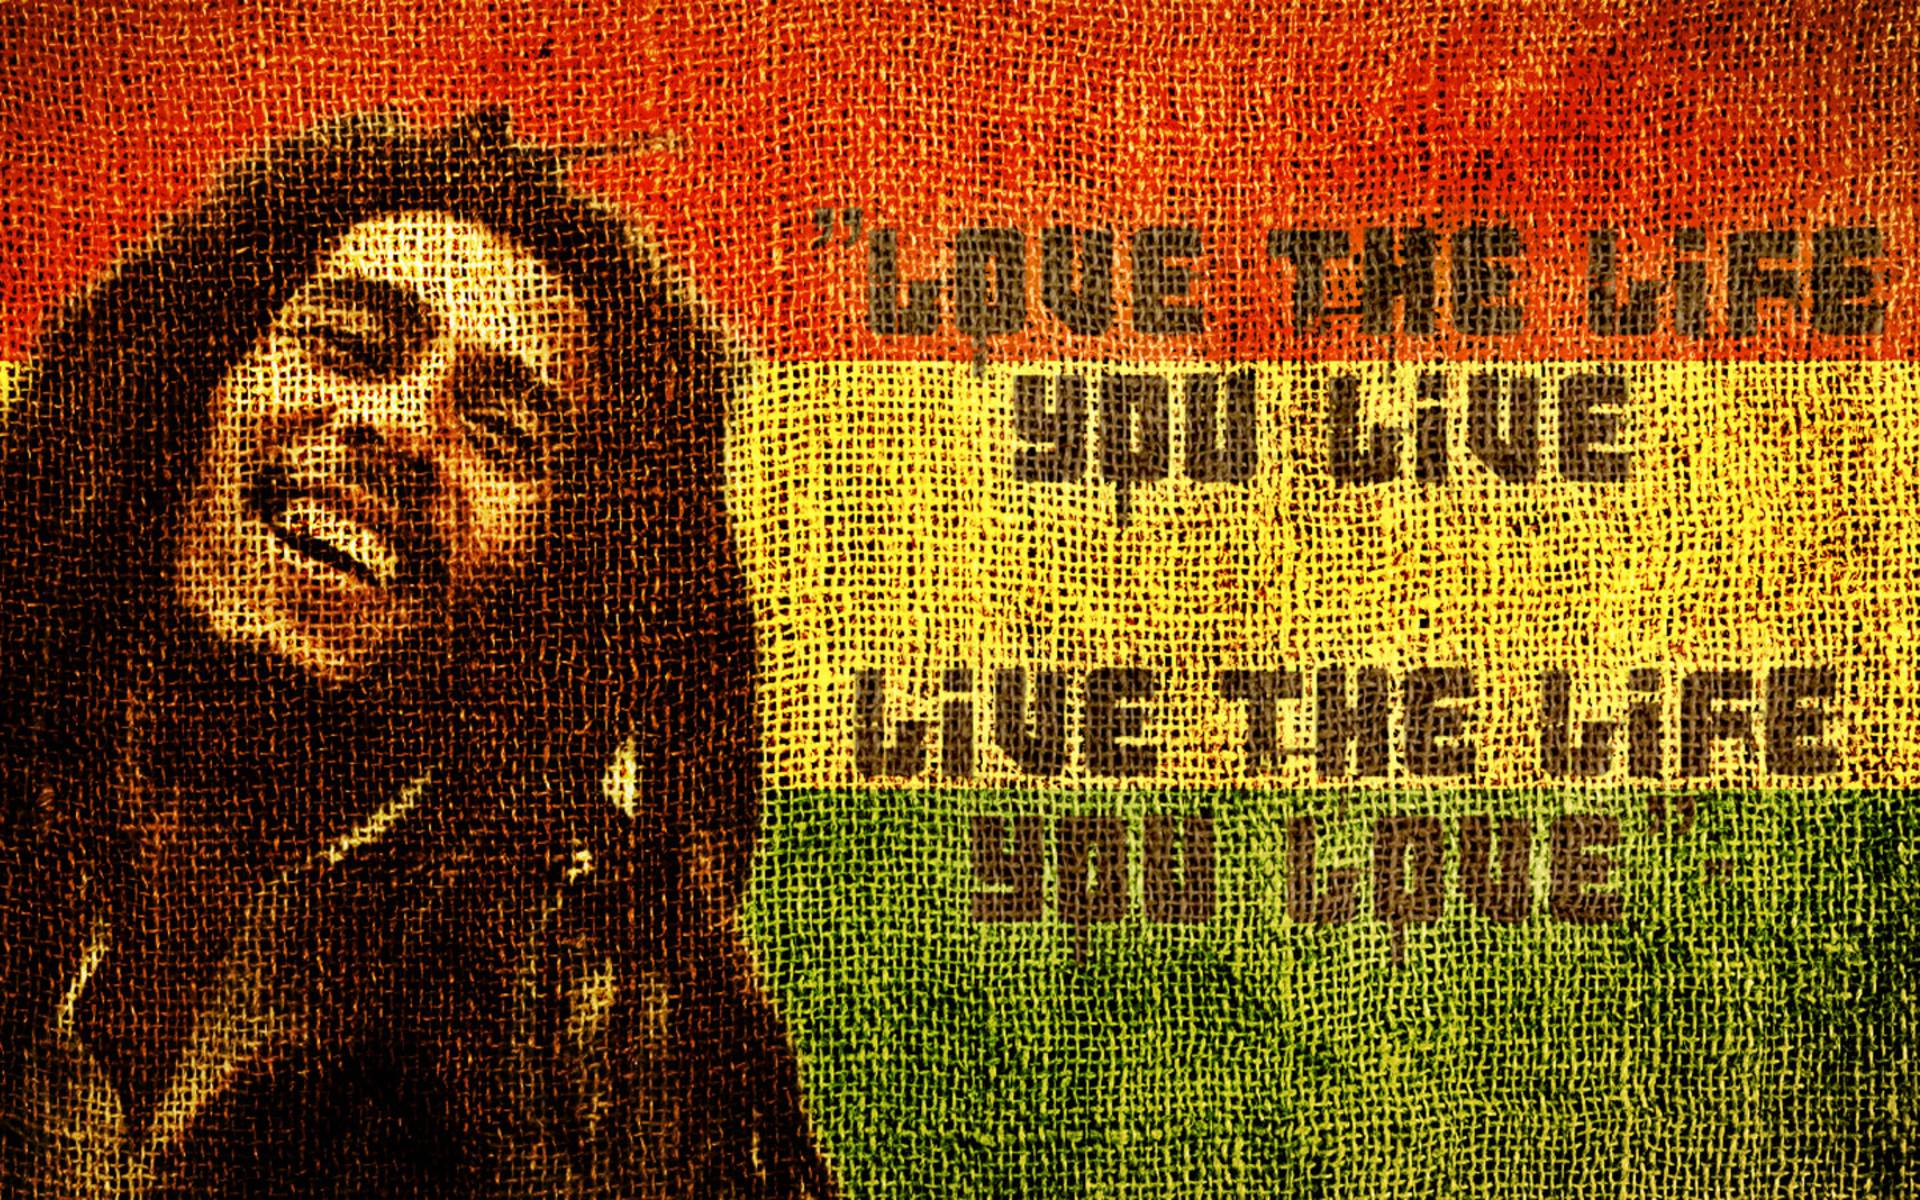 No Love Hd Wallpaper : Bob Marley Desktop Backgrounds - Wallpaper cave